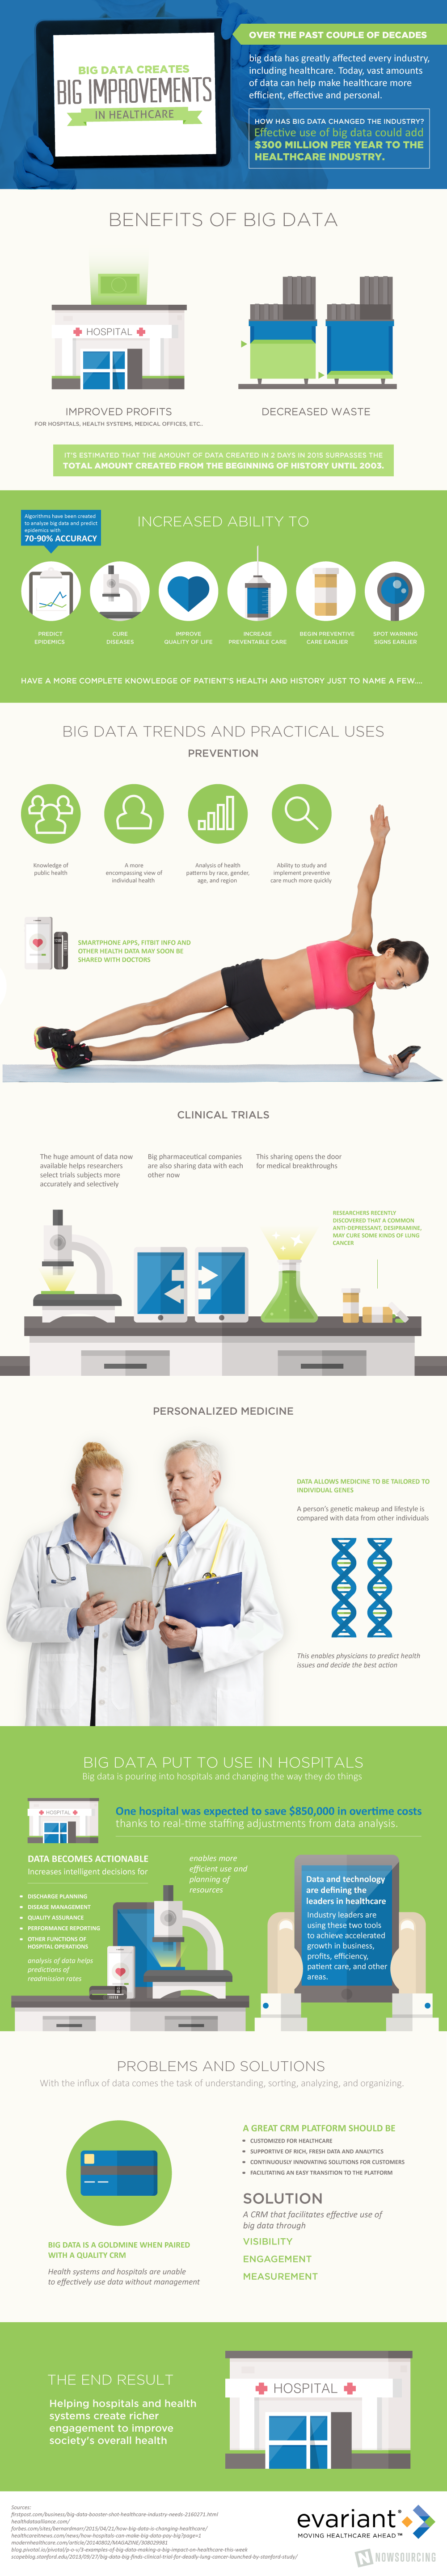 Big Data Creates Big Improvements in Healthcare #infographic